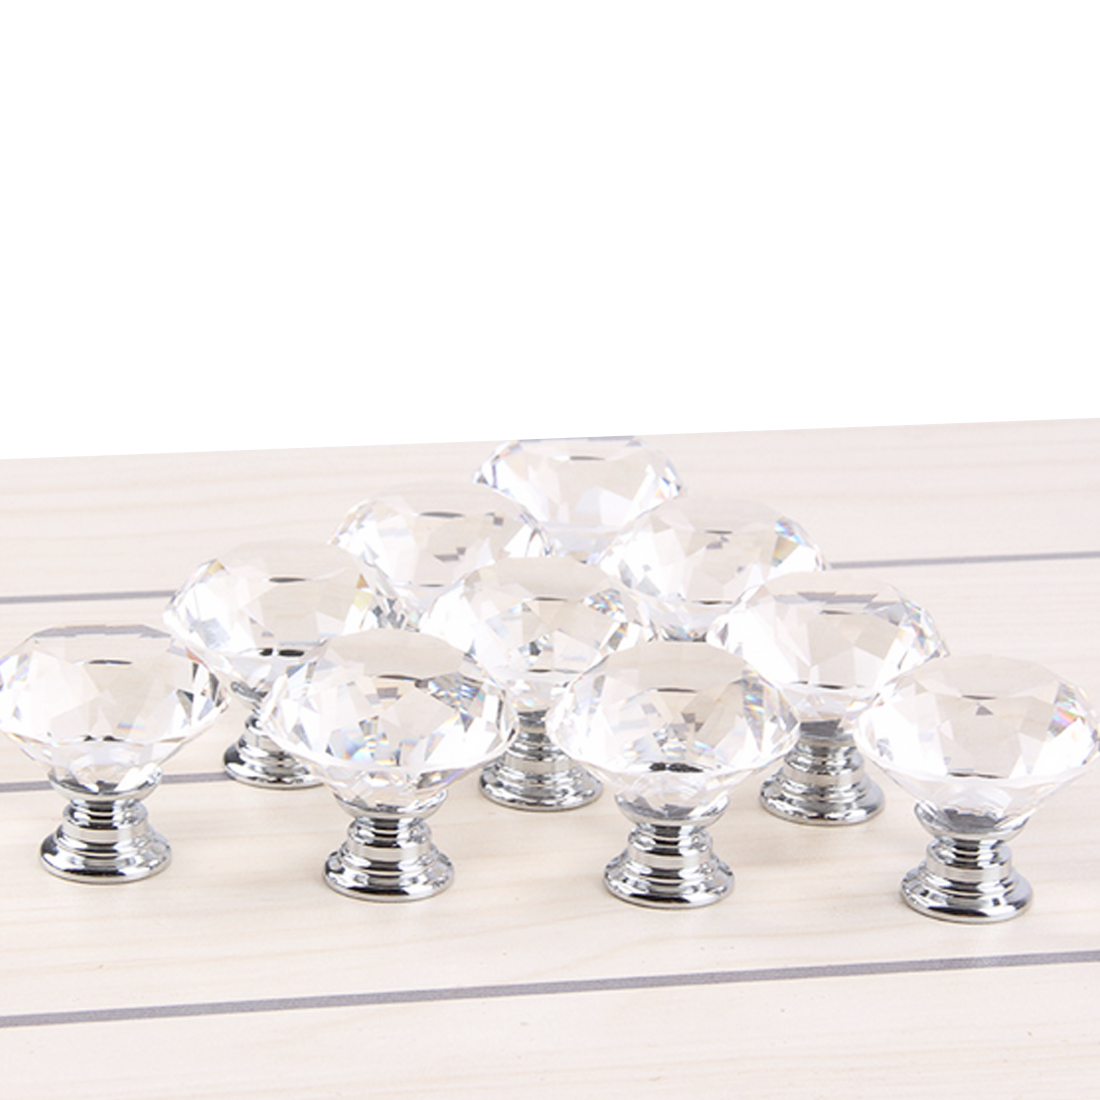 Hot!10 Pcs 30mm Diamond Shape Crystal Glass Door Handle Knob for furniture Drawer Cabinet Kitchen Pull Handles Knobs Wardrobe 10 pcs 30mm diamond shape crystal glass drawer cabinet knobs and pull handles kitchen door wardrobe hardware accessories